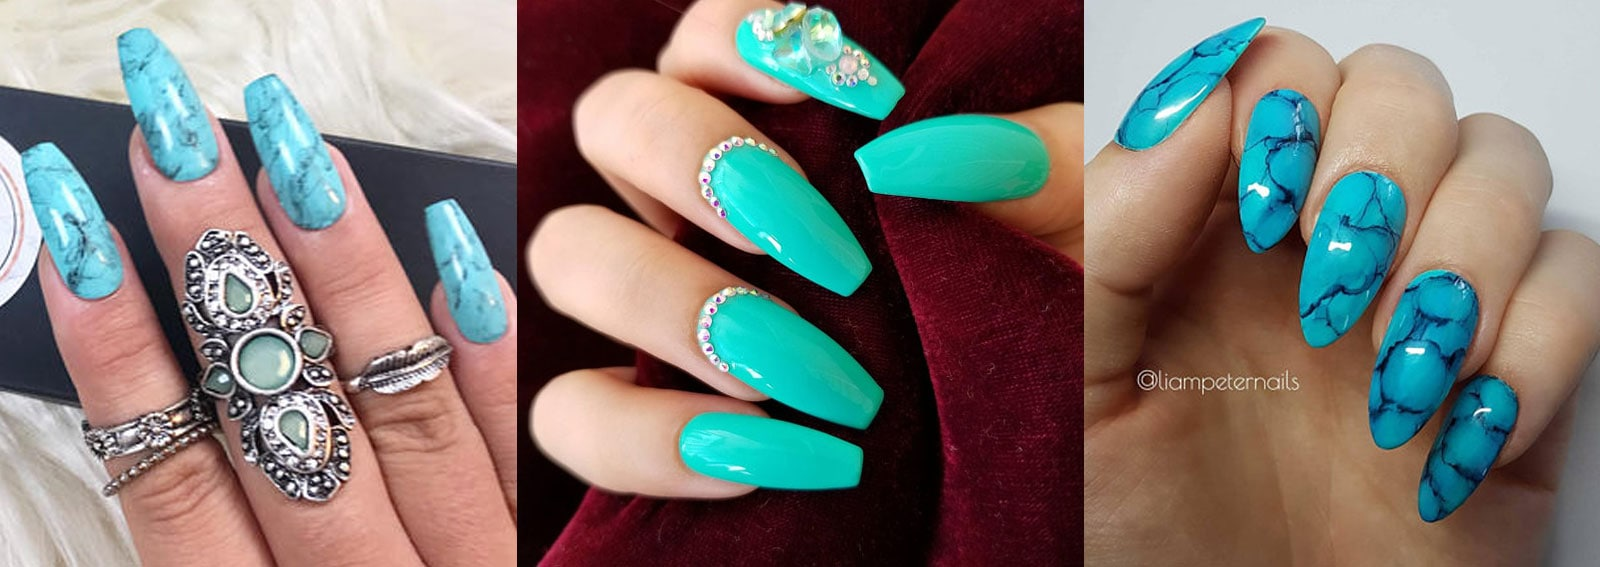 turquoise-nails-nail-art-turchese-unghie-estate-2018-COVER-DEKSTOP